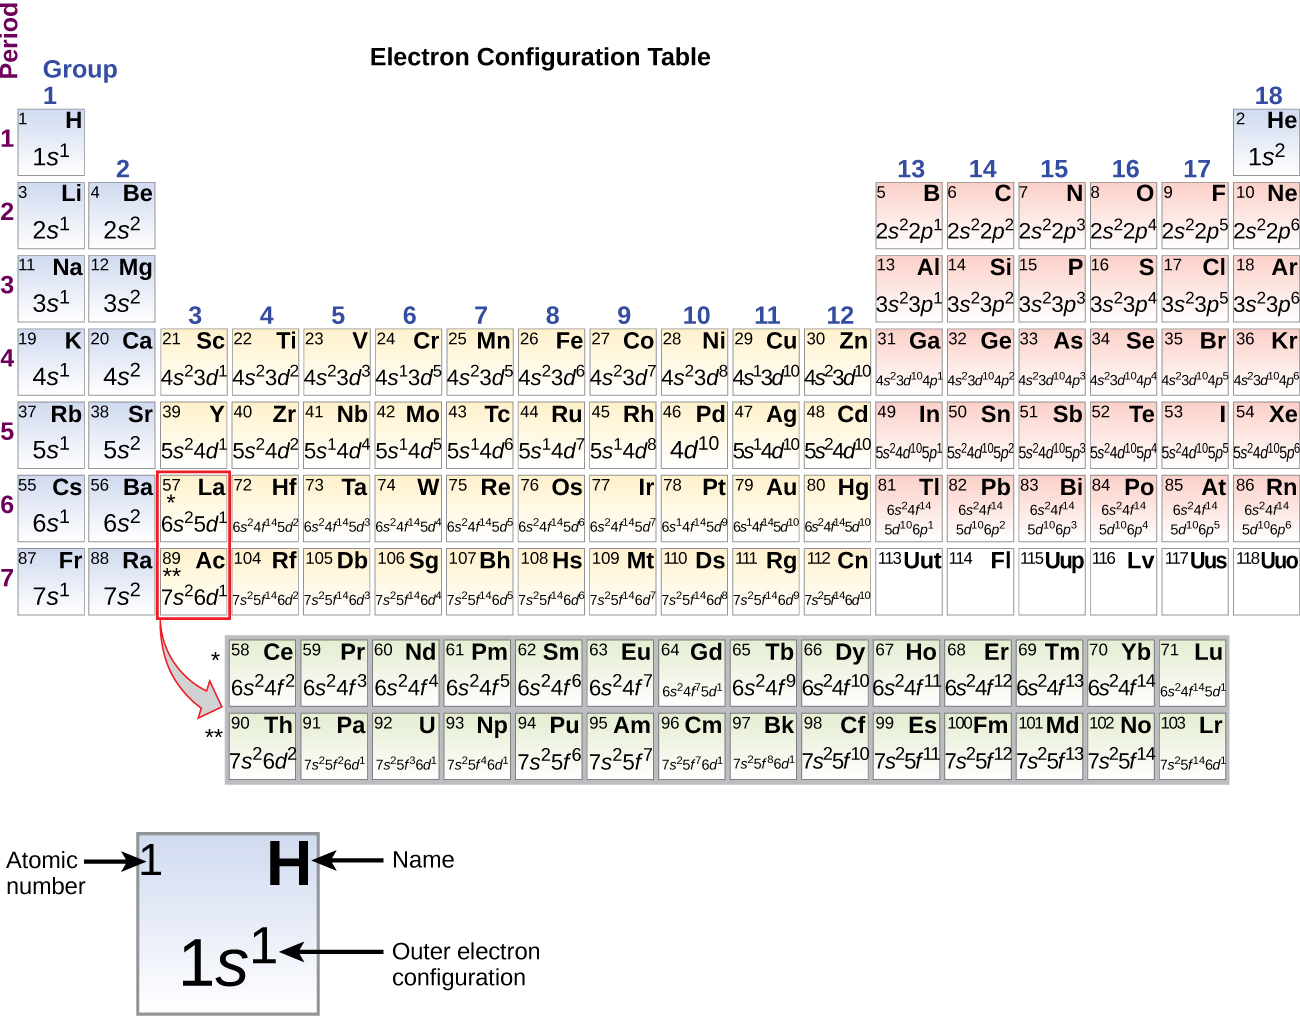 64 electronic structure of atoms electron configurations a periodic table entitled electron configuration table is shown the table gamestrikefo Image collections